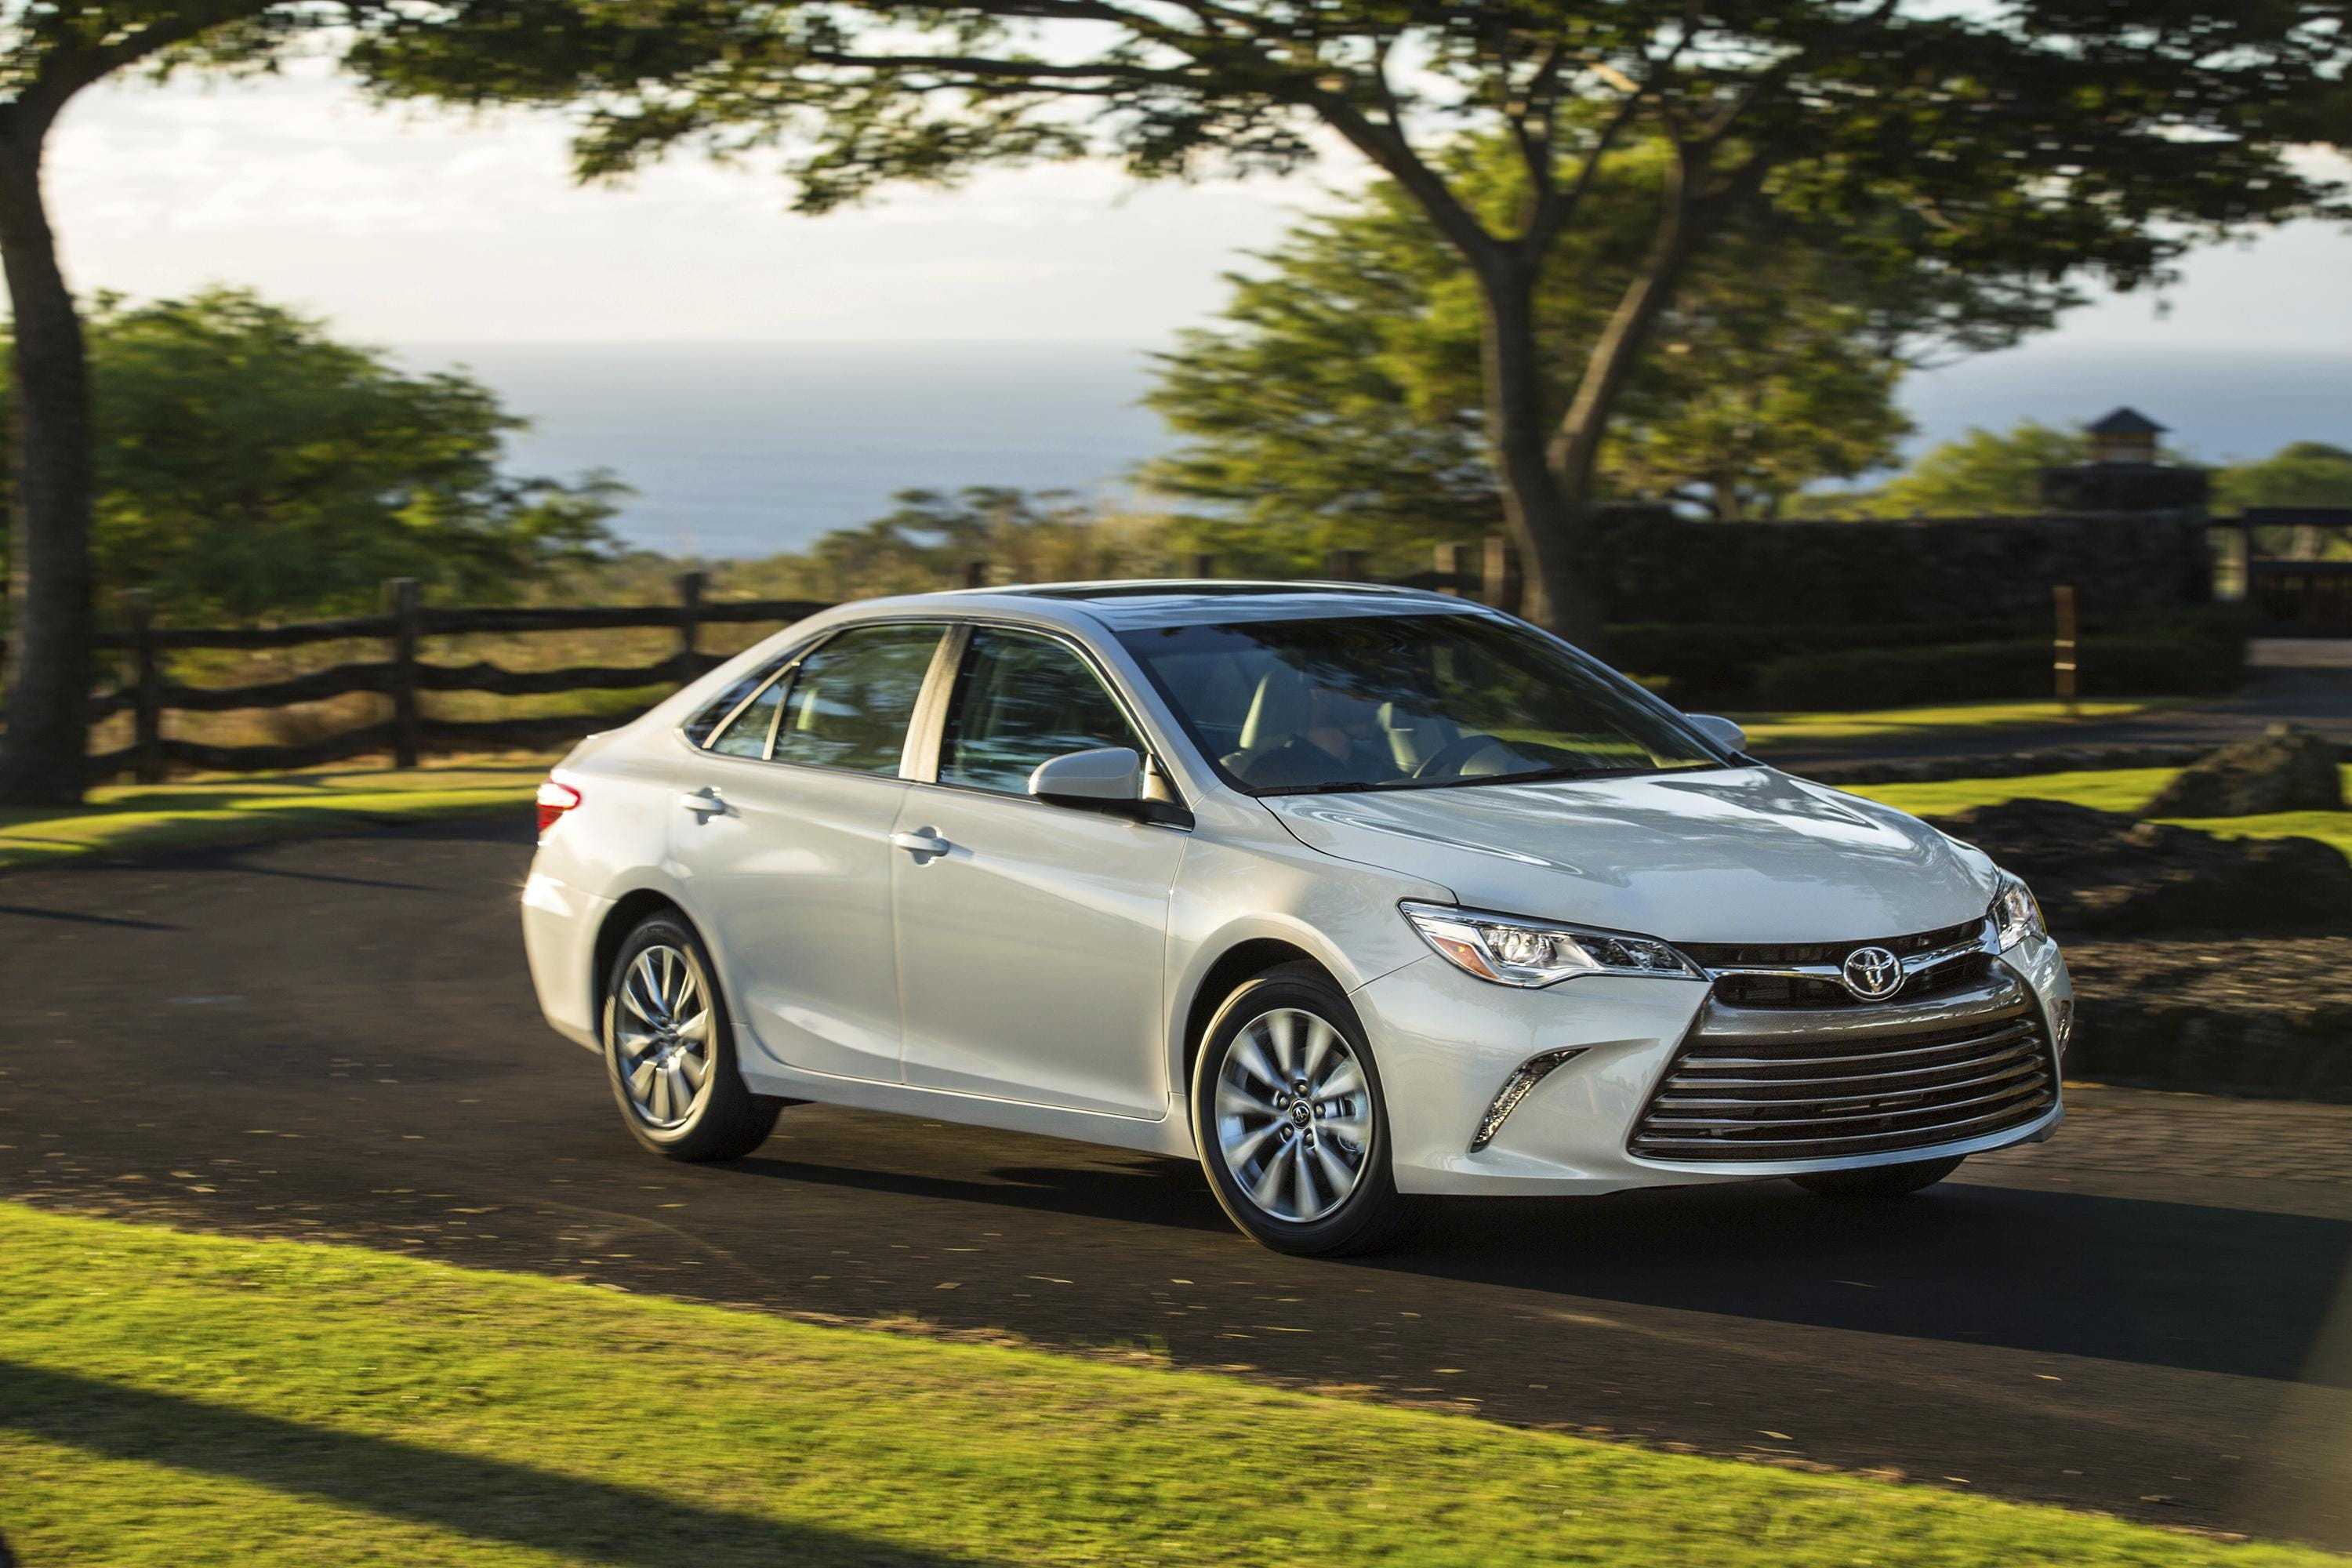 For The Fifth Year In A Row, Toyota Ranked At The Top Of The 27 Brand List  For New Car Reliability. (Photo: David Dewhurst Photography / AP)